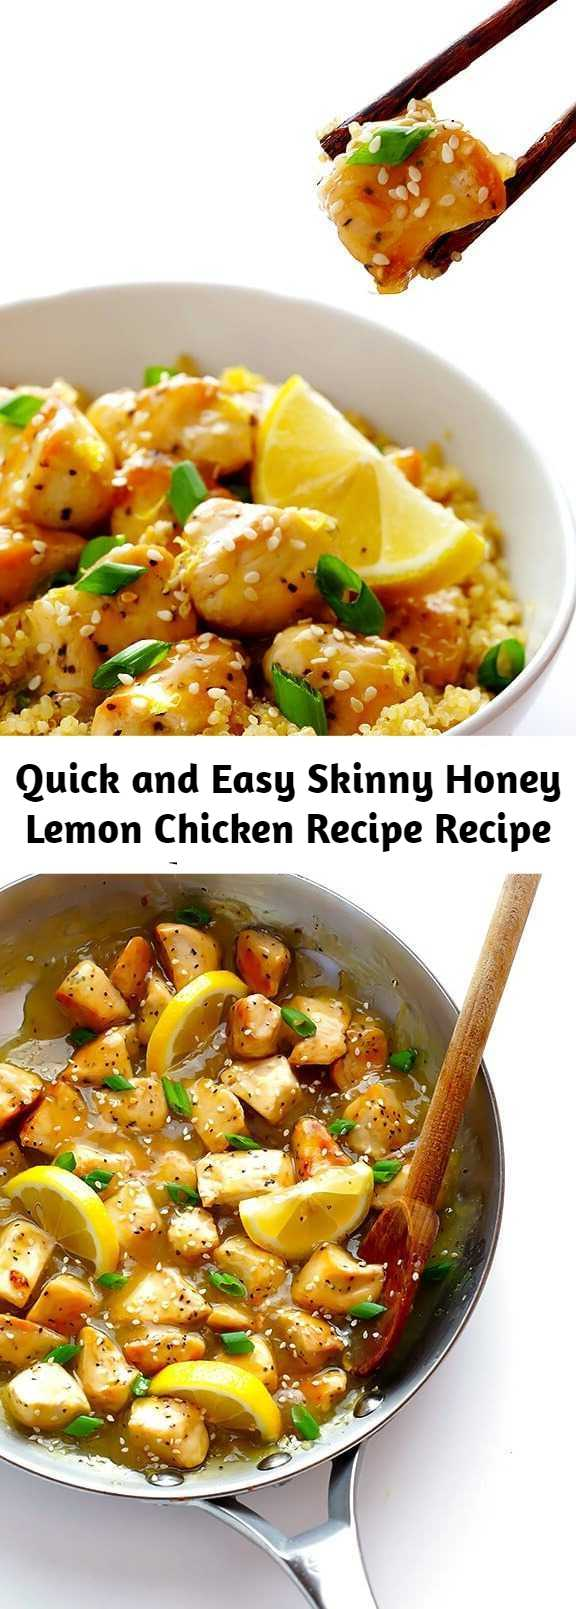 Quick and Easy Skinny Honey Lemon Chicken Recipe Recipe - This Skinny Honey Lemon Chicken recipe is quick and easy to make, made naturally lighter and gluten-free, and it's absolutely delicious!